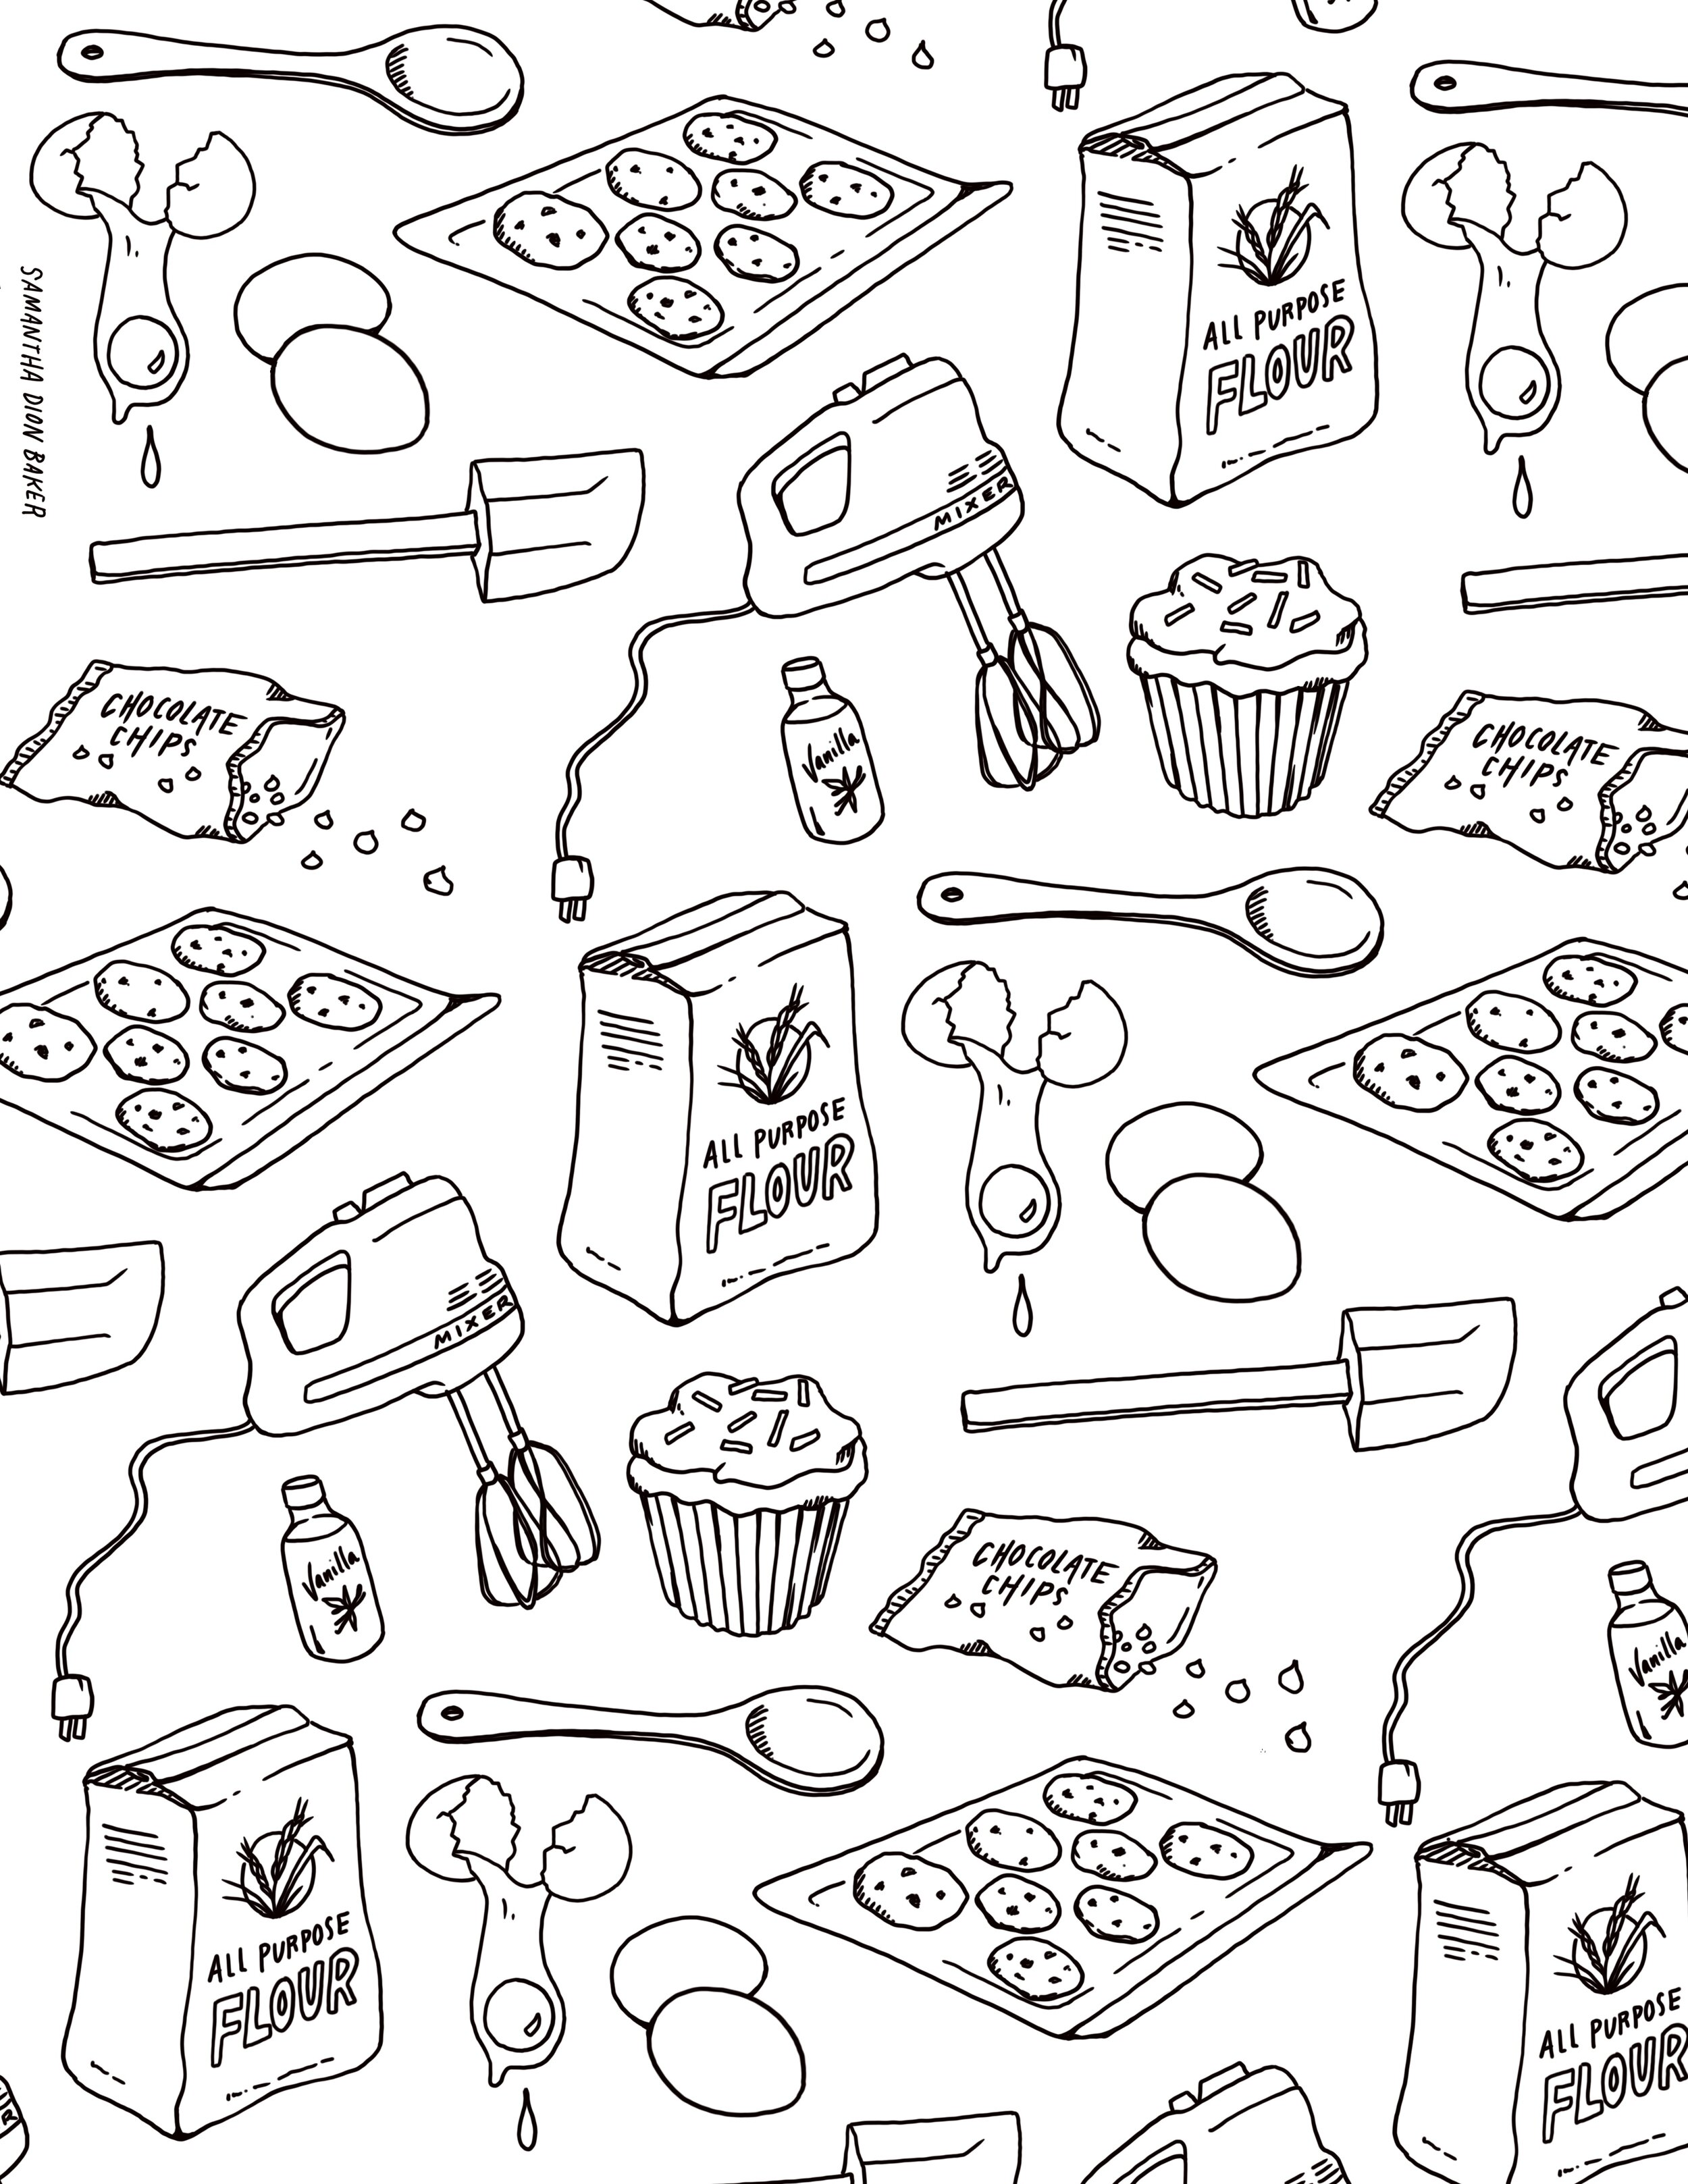 - Free Coloring Pages For Adults And Kids - Skillshare